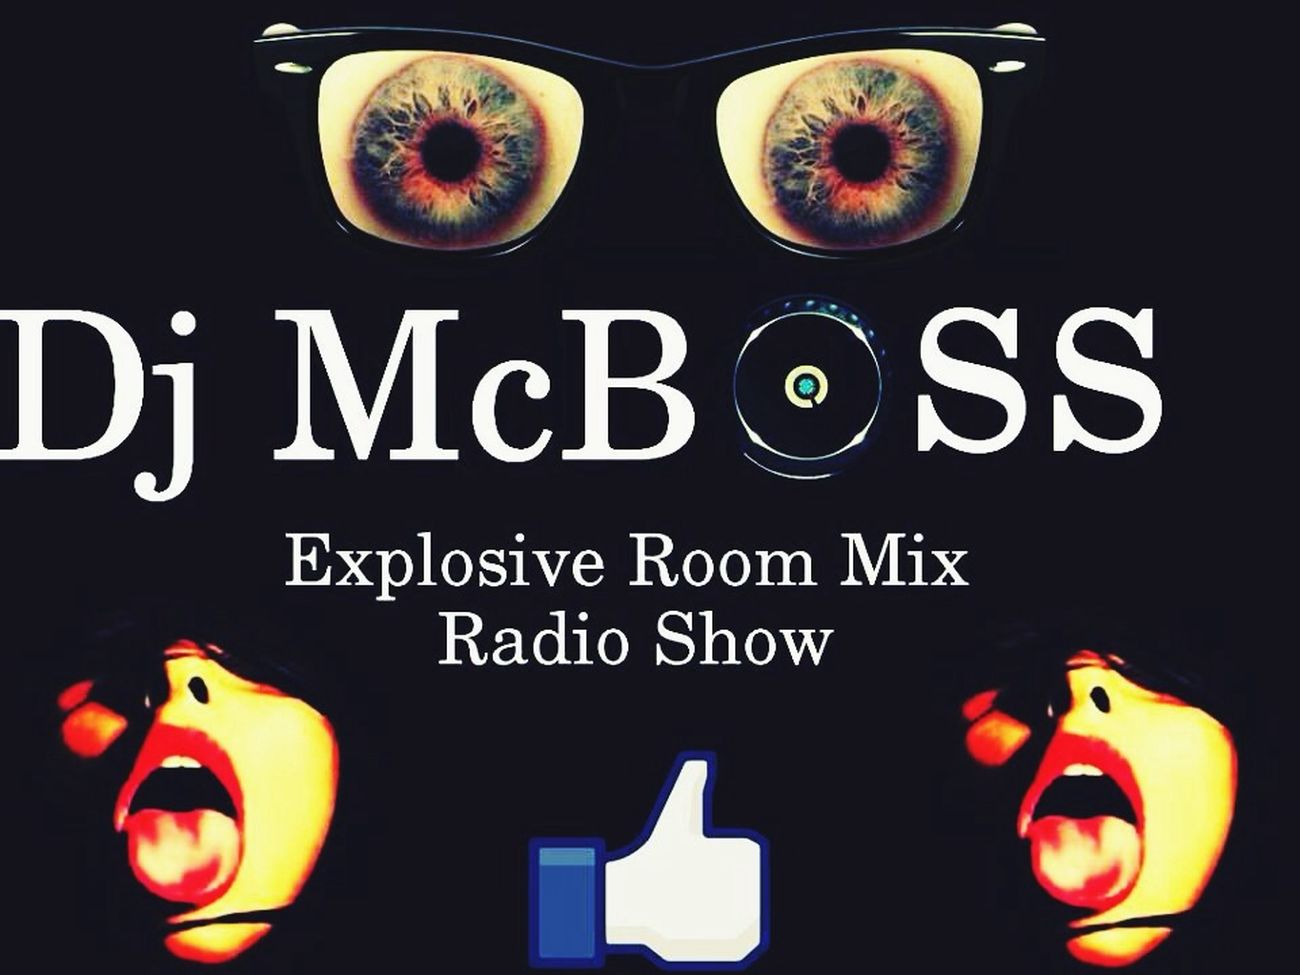 DjMcBoss Check This Out That's Me ExplosiveRoomMix